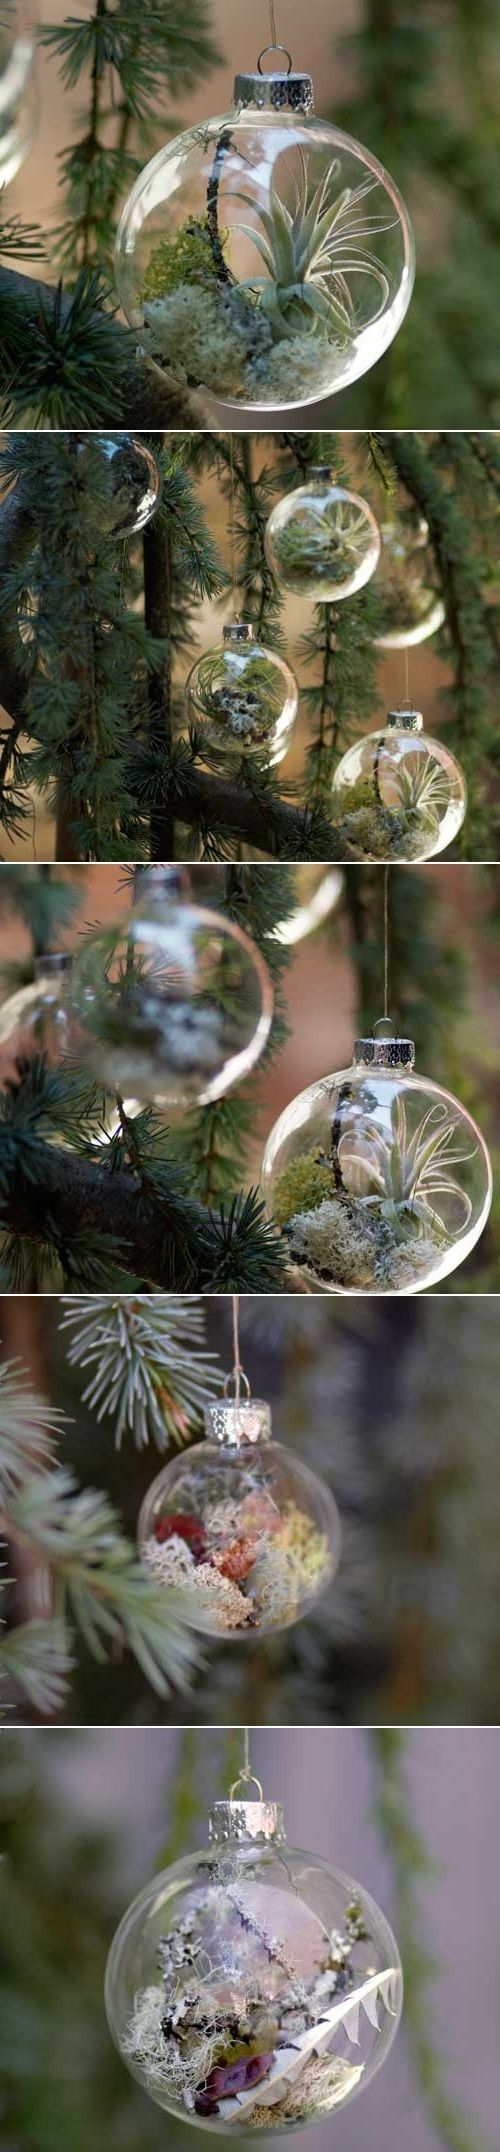 """DIY Ornaments with Living Plants ~ For a natural, """"woodsy"""" look! I'm dreaming of a fireside log cabin Christmas with gingham bows, popcorn and cranberry garlands, and these ornaments!"""